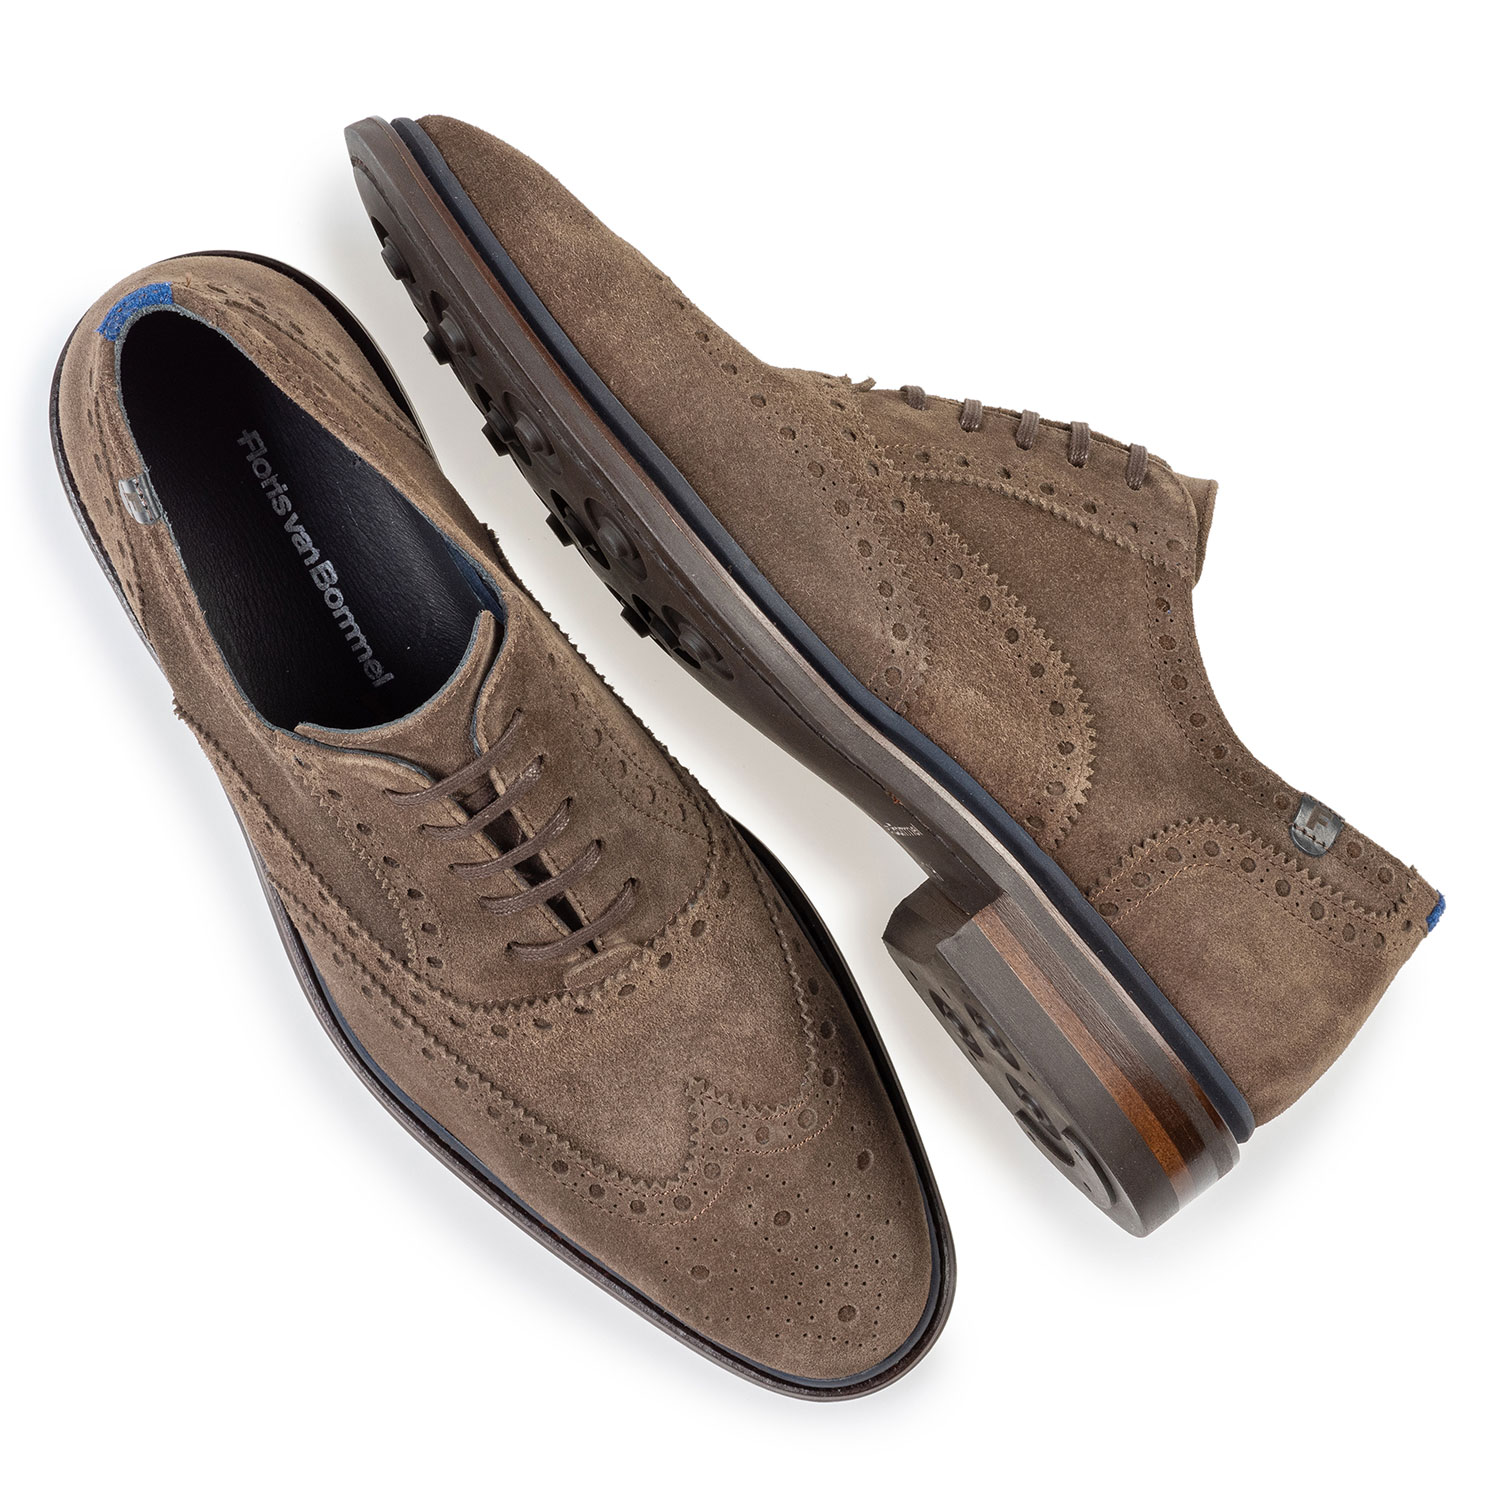 19172/03 - Brogue suede leather dark taupe